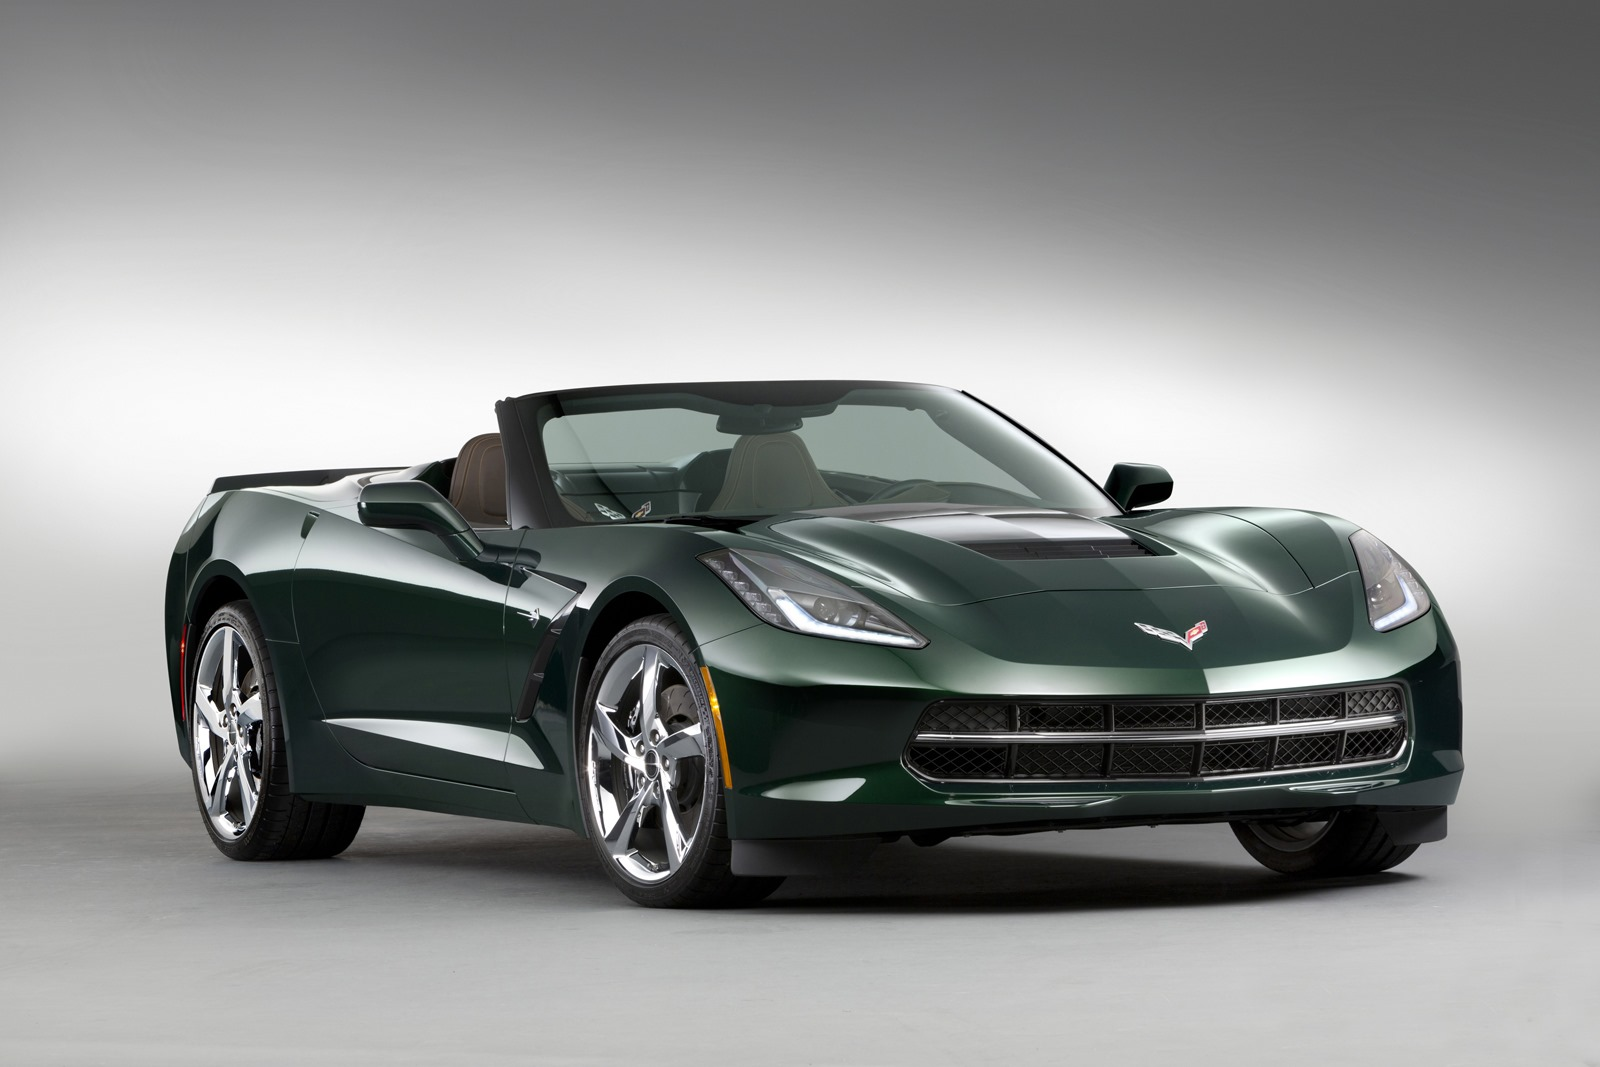 2014 chevrolet corvette stingray convertible well under way chevrolet. Cars Review. Best American Auto & Cars Review